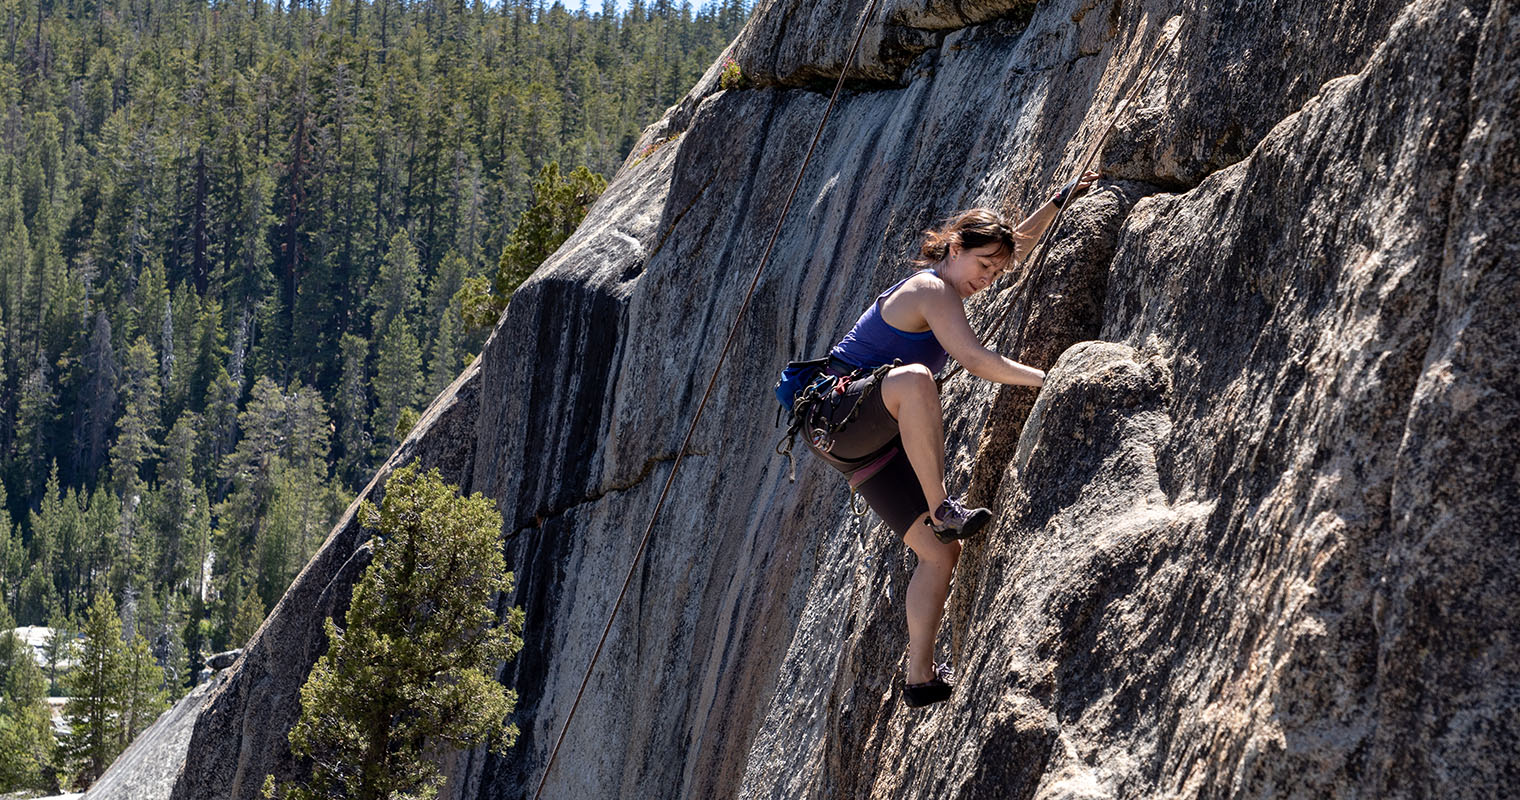 Climbing at Tiger Cage – Courtright Reservoir